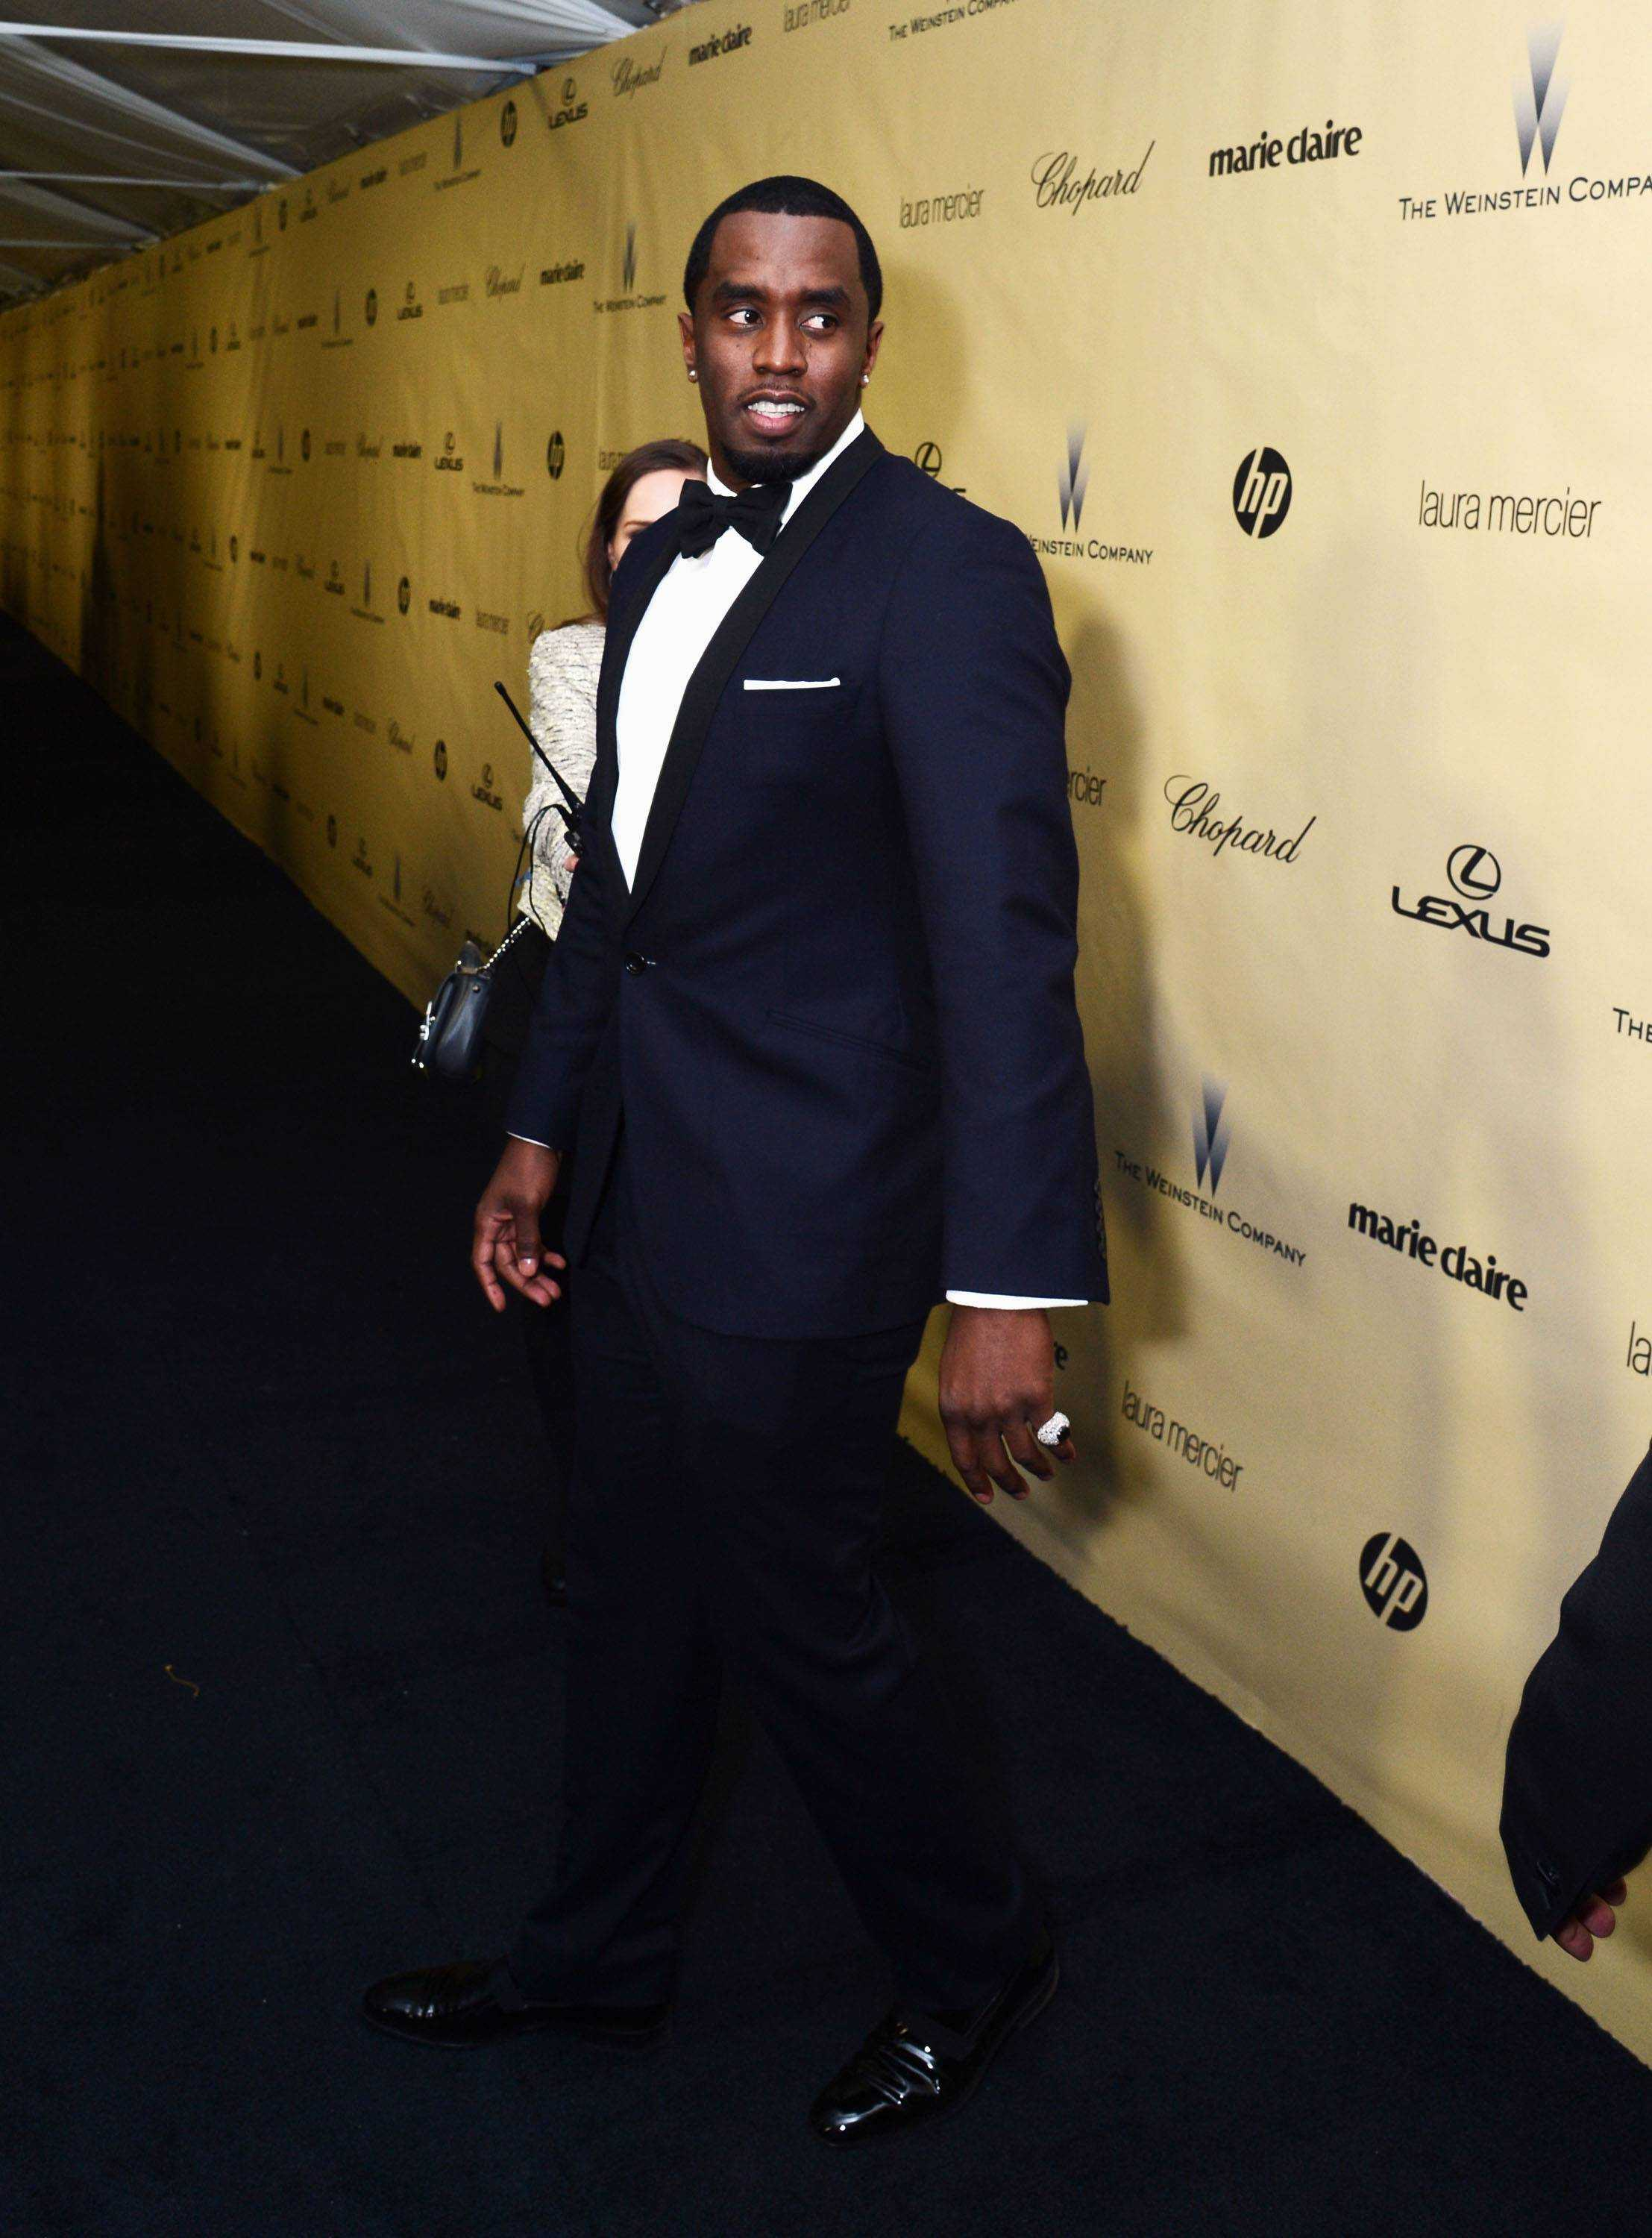 The Weinstein Company's 2013 Golden Globe Awards After Party Presented By Chopard, HP, Laura Mercier, Lexus, Marie Claire, And Yucaipa Films - Red Carpet